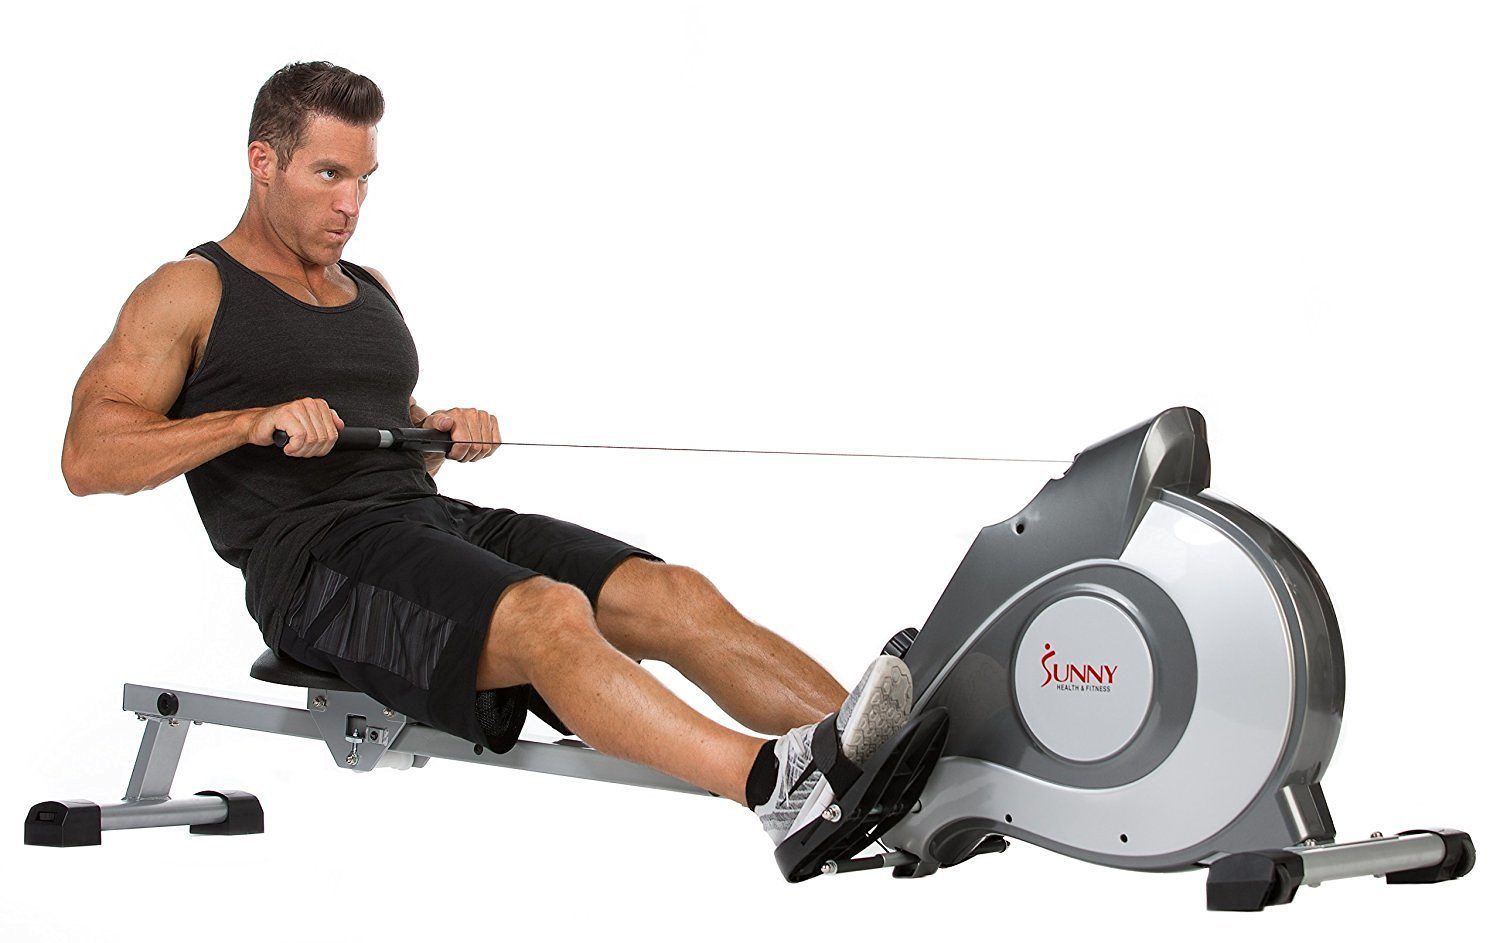 image showing the Sunny Health & Fitness SF-RW5515 Magnetic Rowing Machine